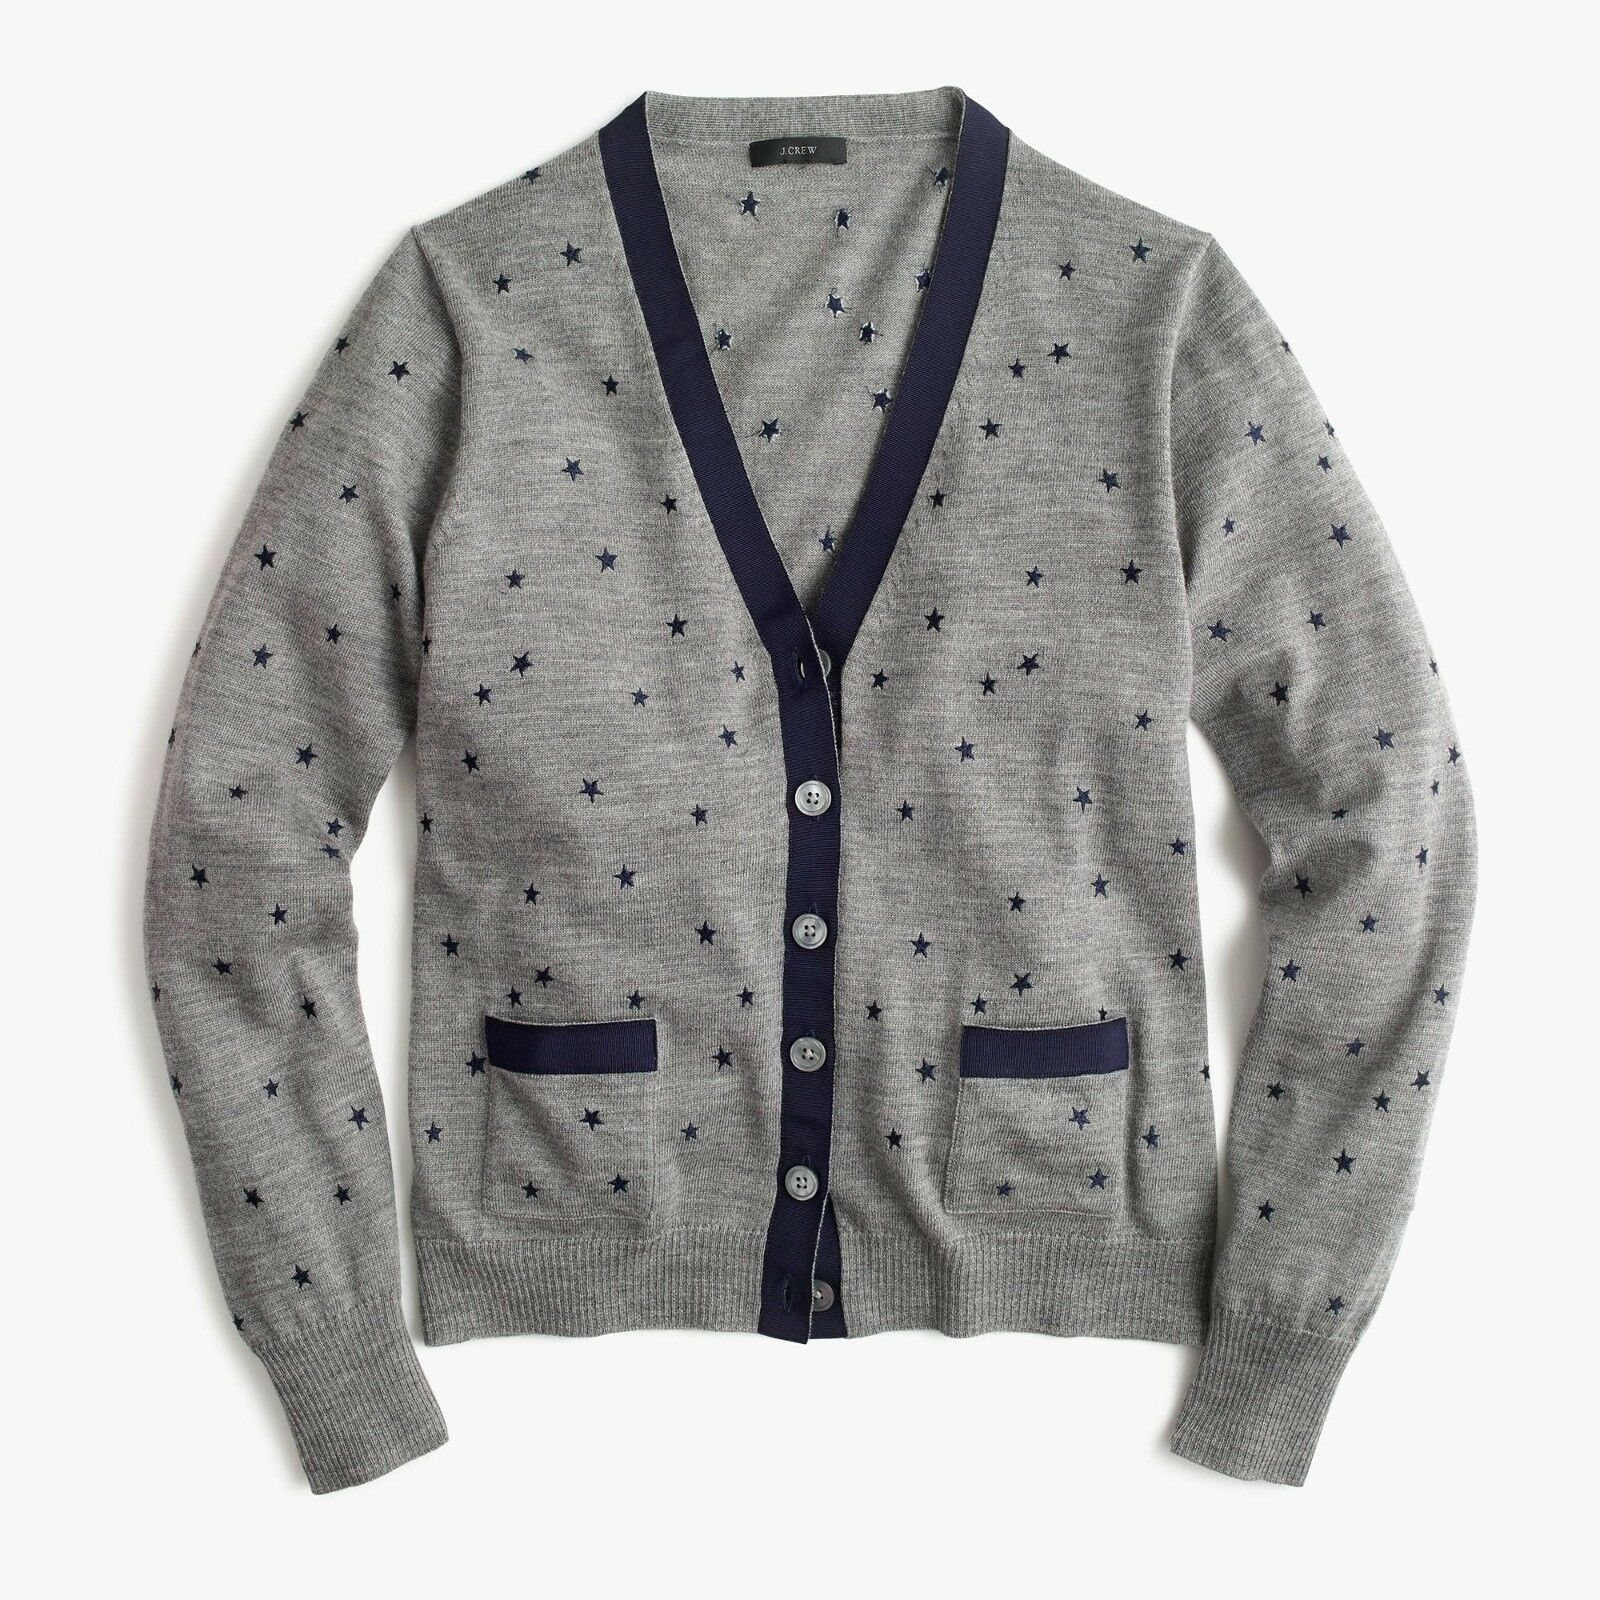 NWT  89.50 J.Crew JCREW Harlow Cardigan Sweater in Star Print Sz S RARE SOLD OUT